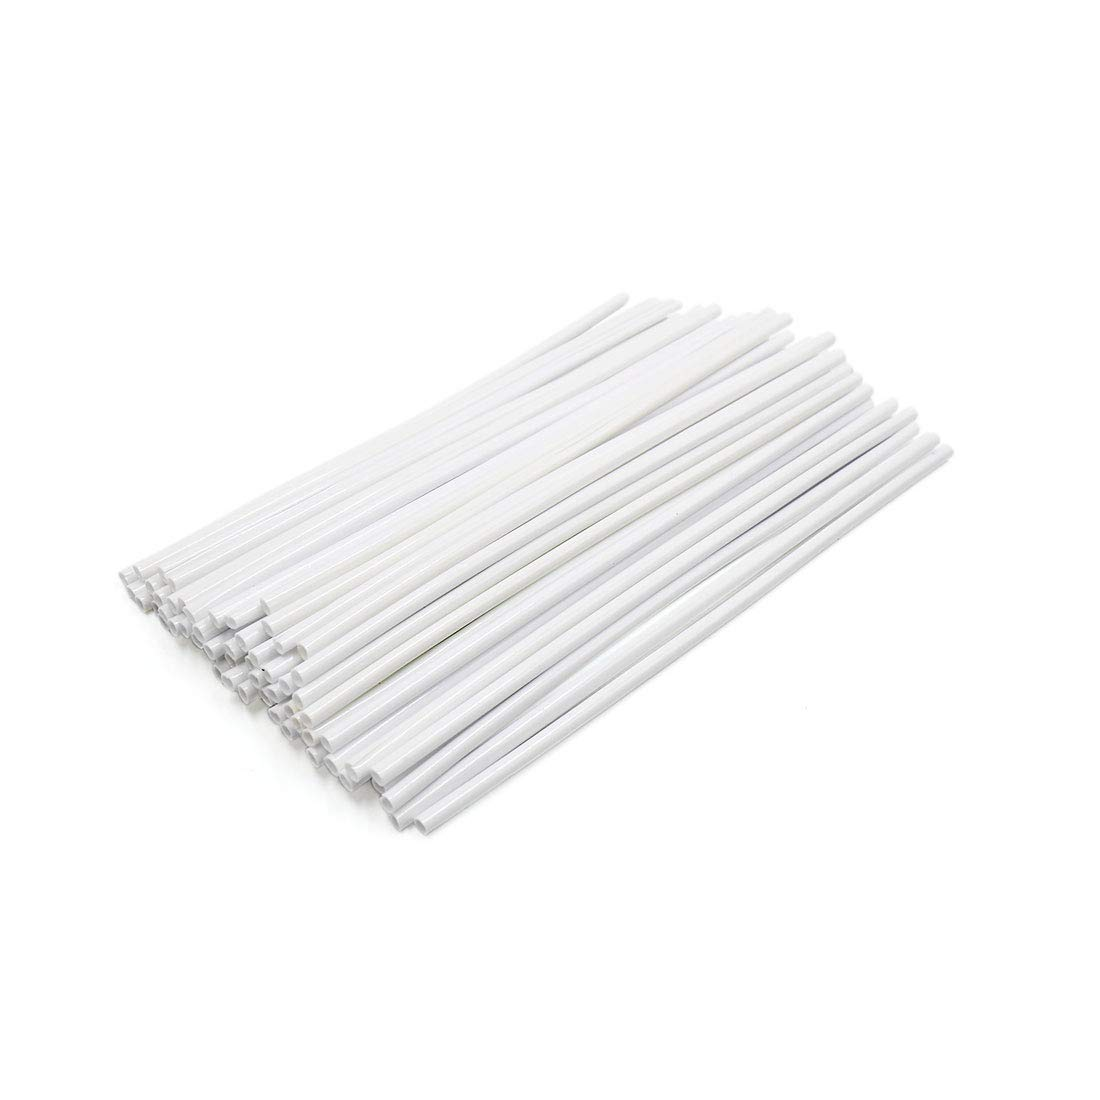 sourcing map 72pcs 23.5cm Length Motorcycle Wheel Steel Wire Spoke Reflective Clip Tube White